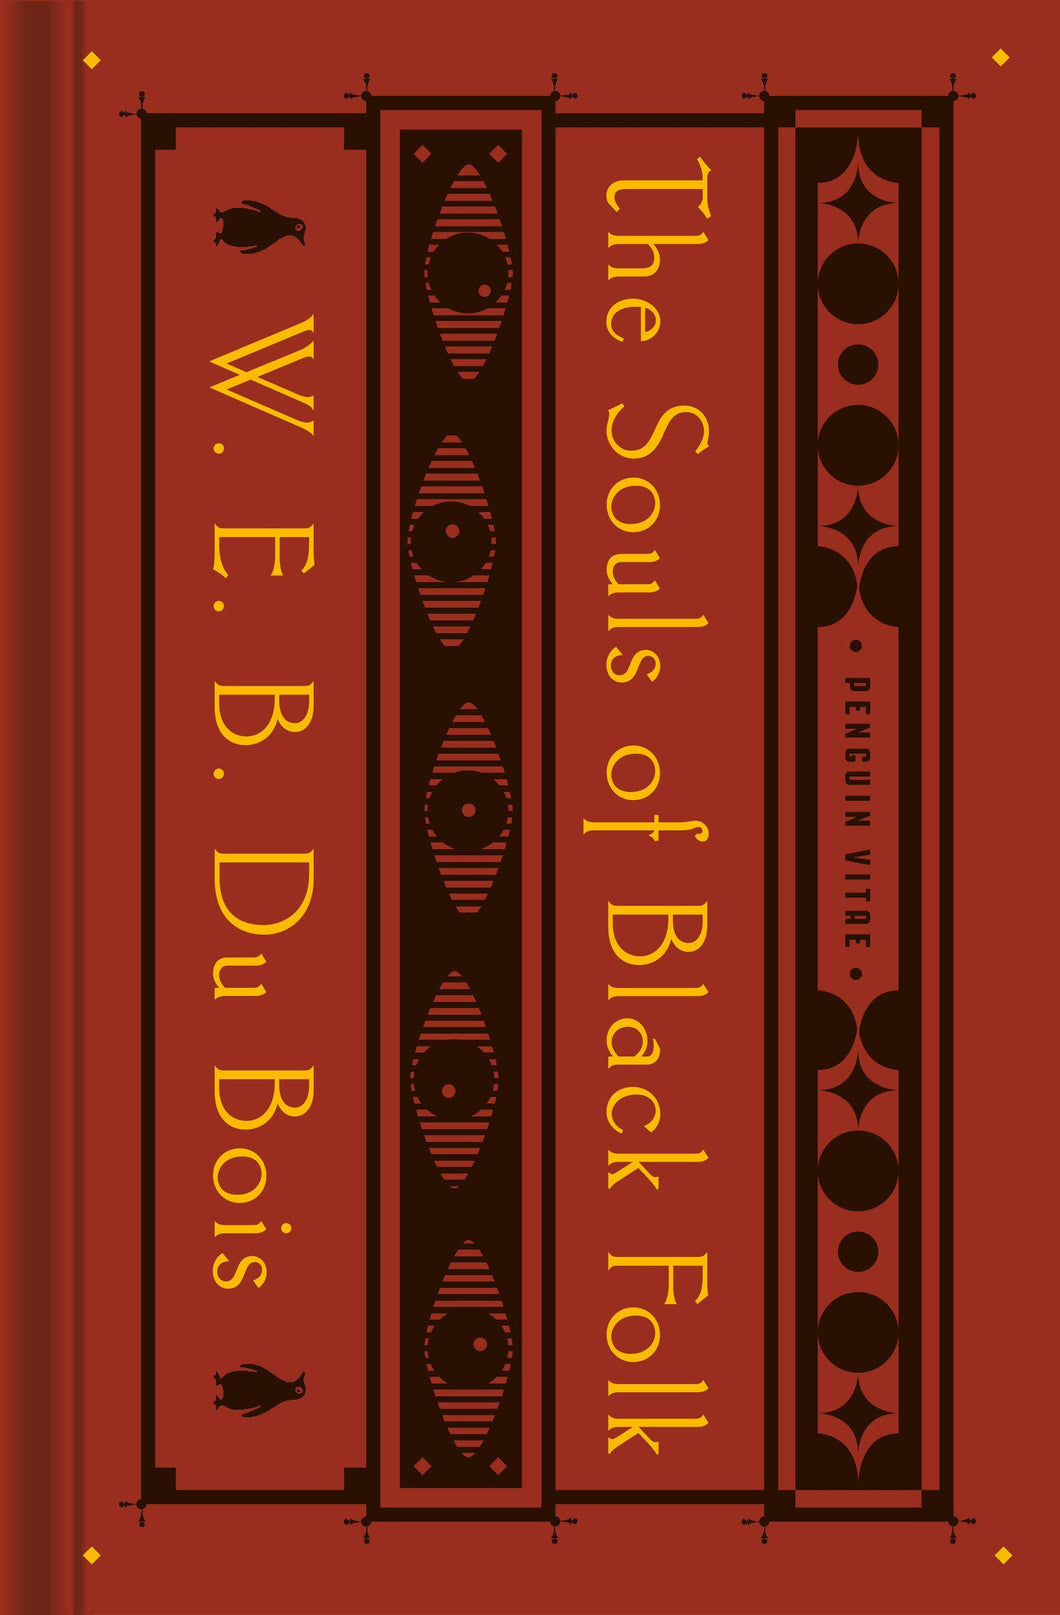 The Souls of Black Folk by W.E.B. Du Bois (Pre-Order, Feb 23)